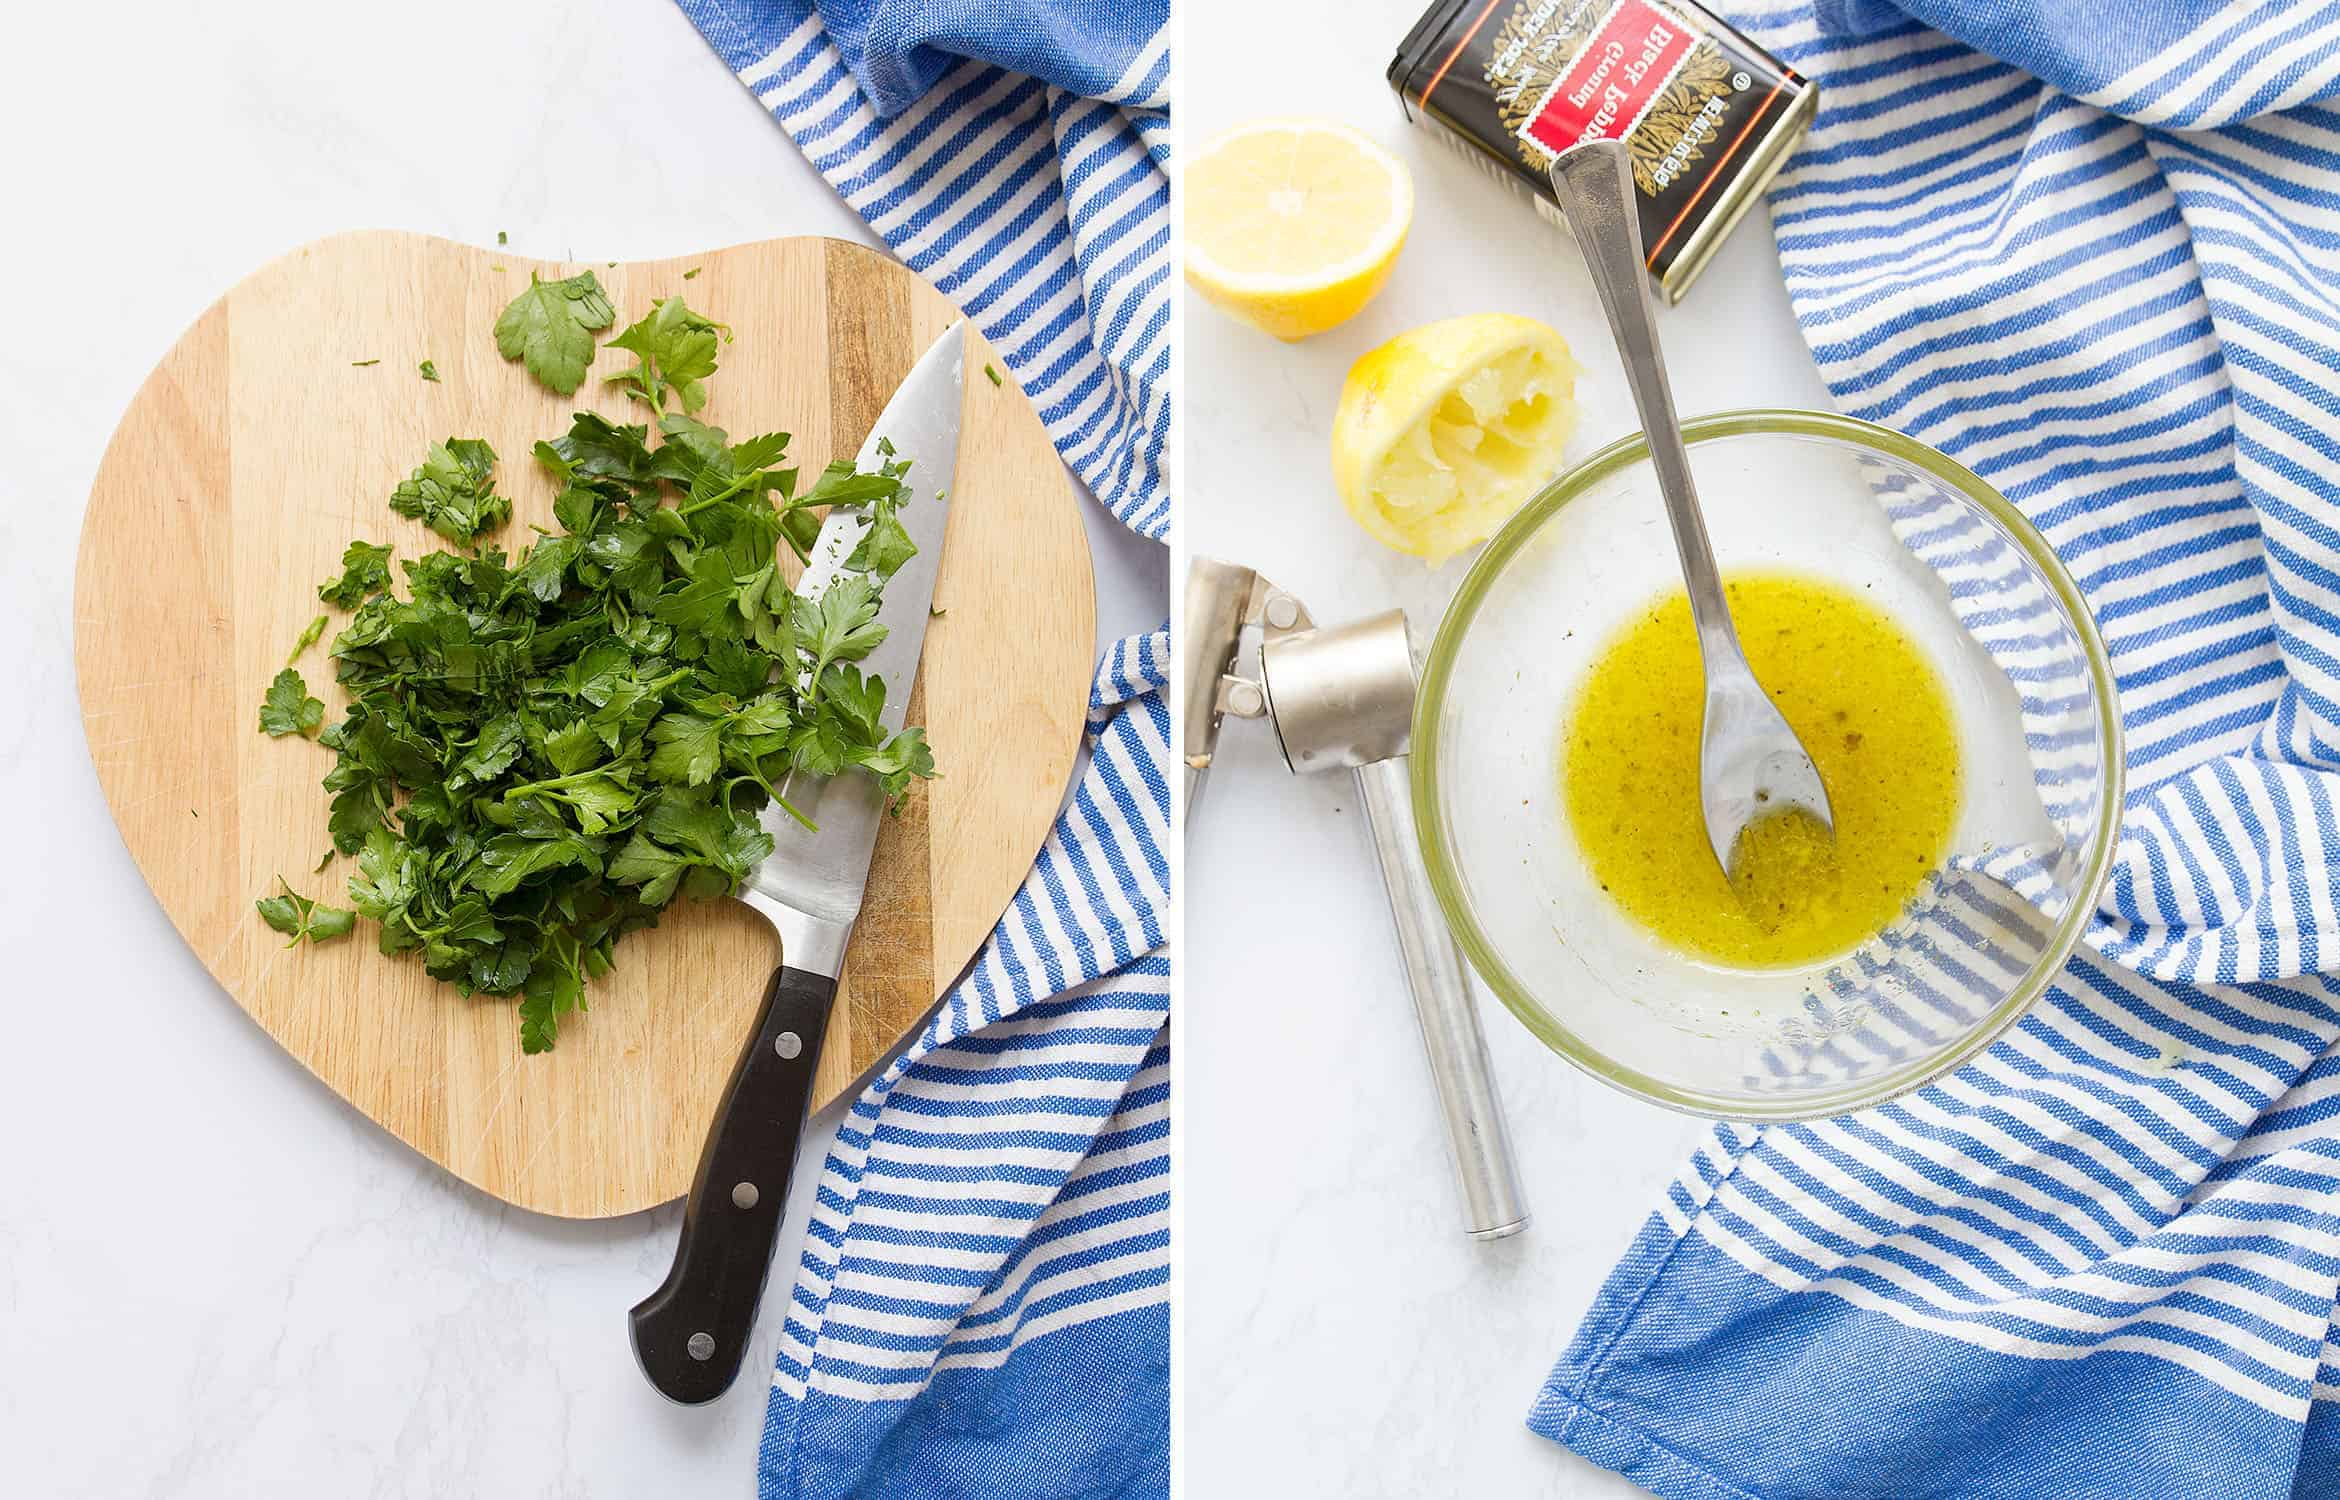 The first image shows parsley on a chopping board. The second one shows the lemon dressing in a glass bowl.